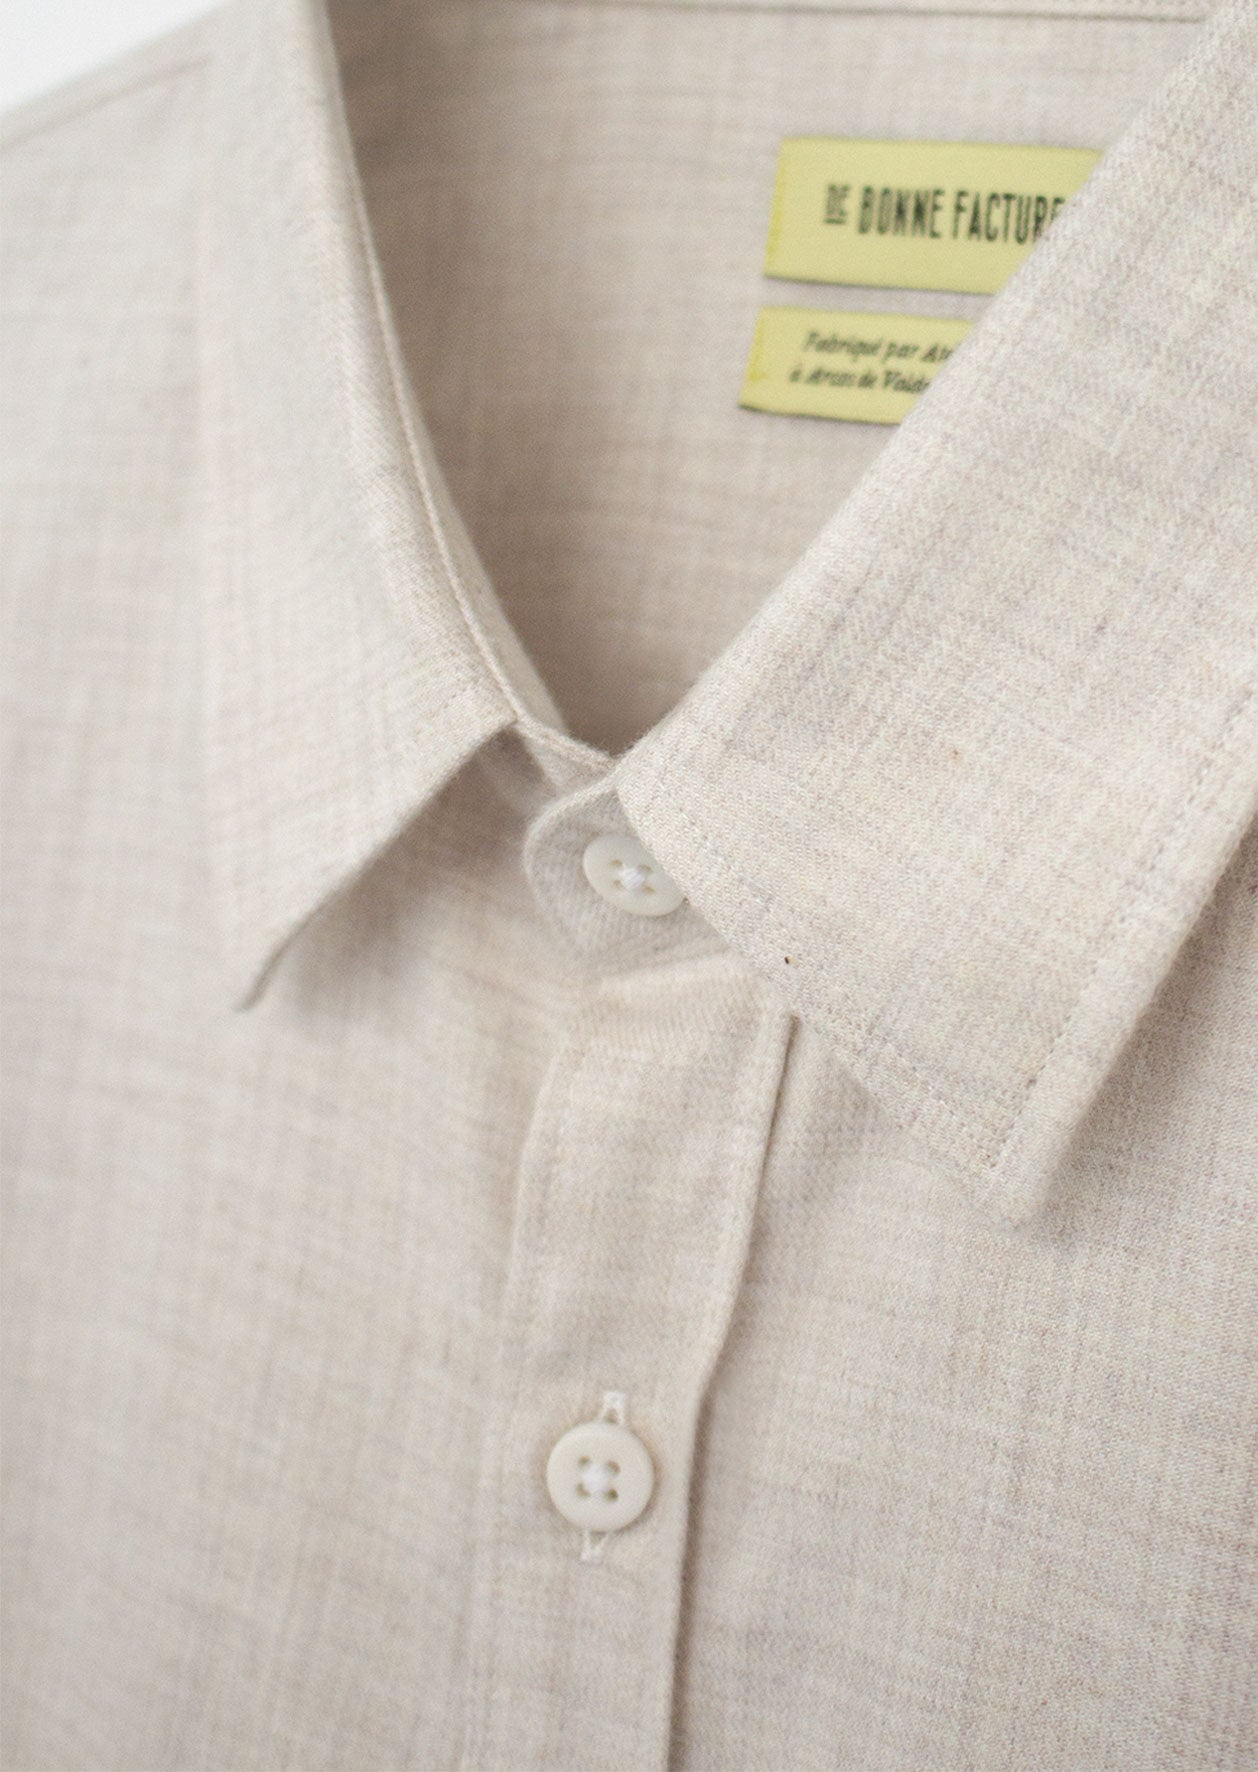 De Bonne Facture - Essential shirt - Cotton wool flannel - Light beige